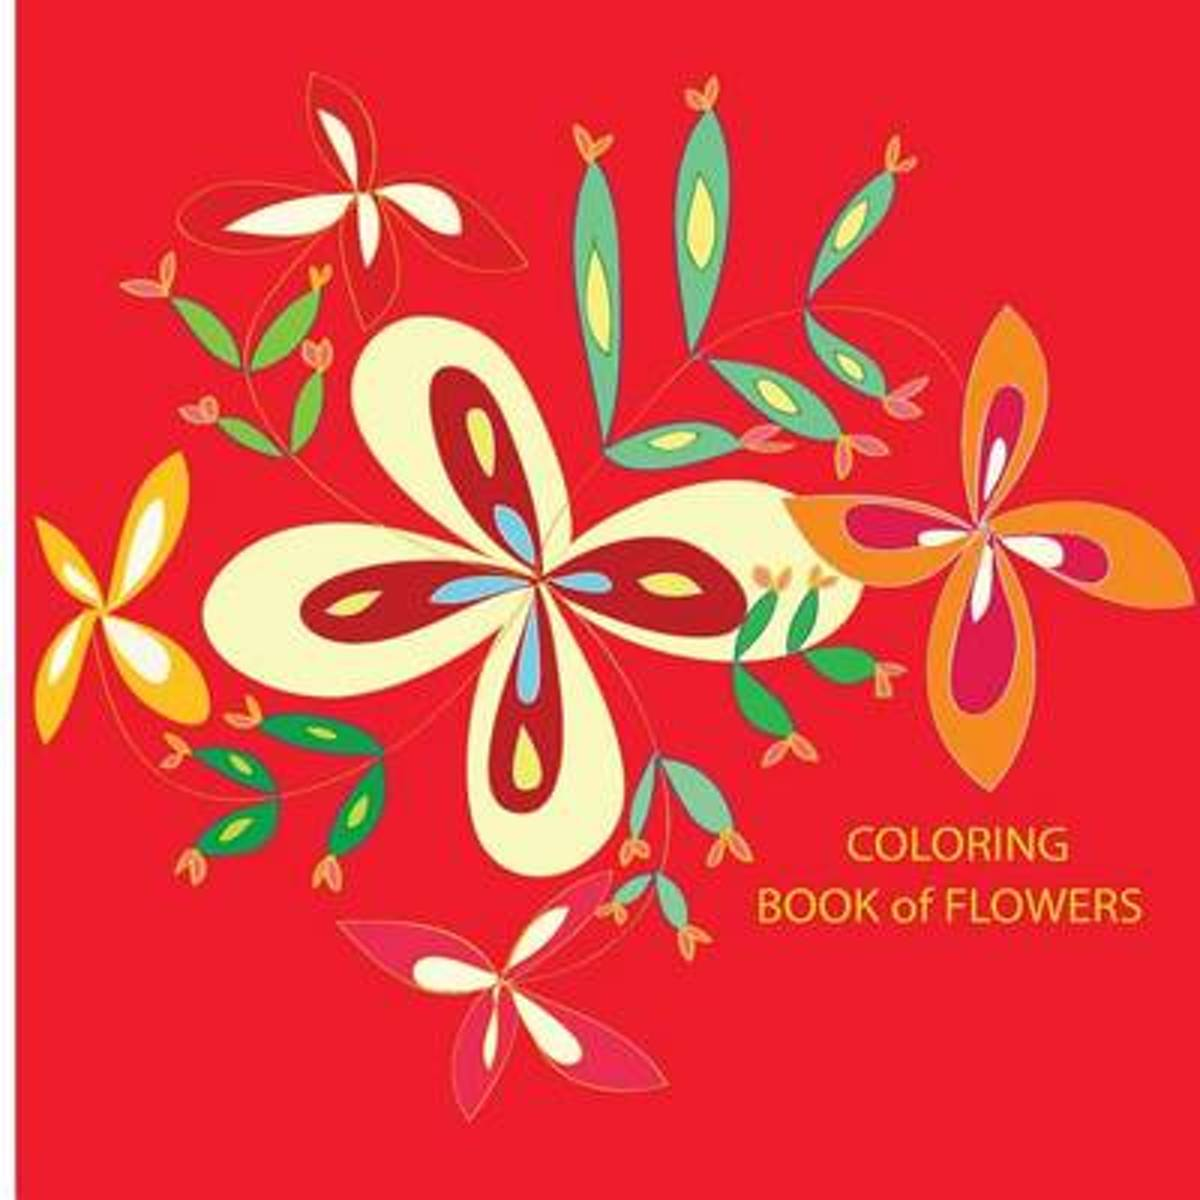 bol.com | Coloring Book of Flowers, Orna | 9781530860258 | Boeken